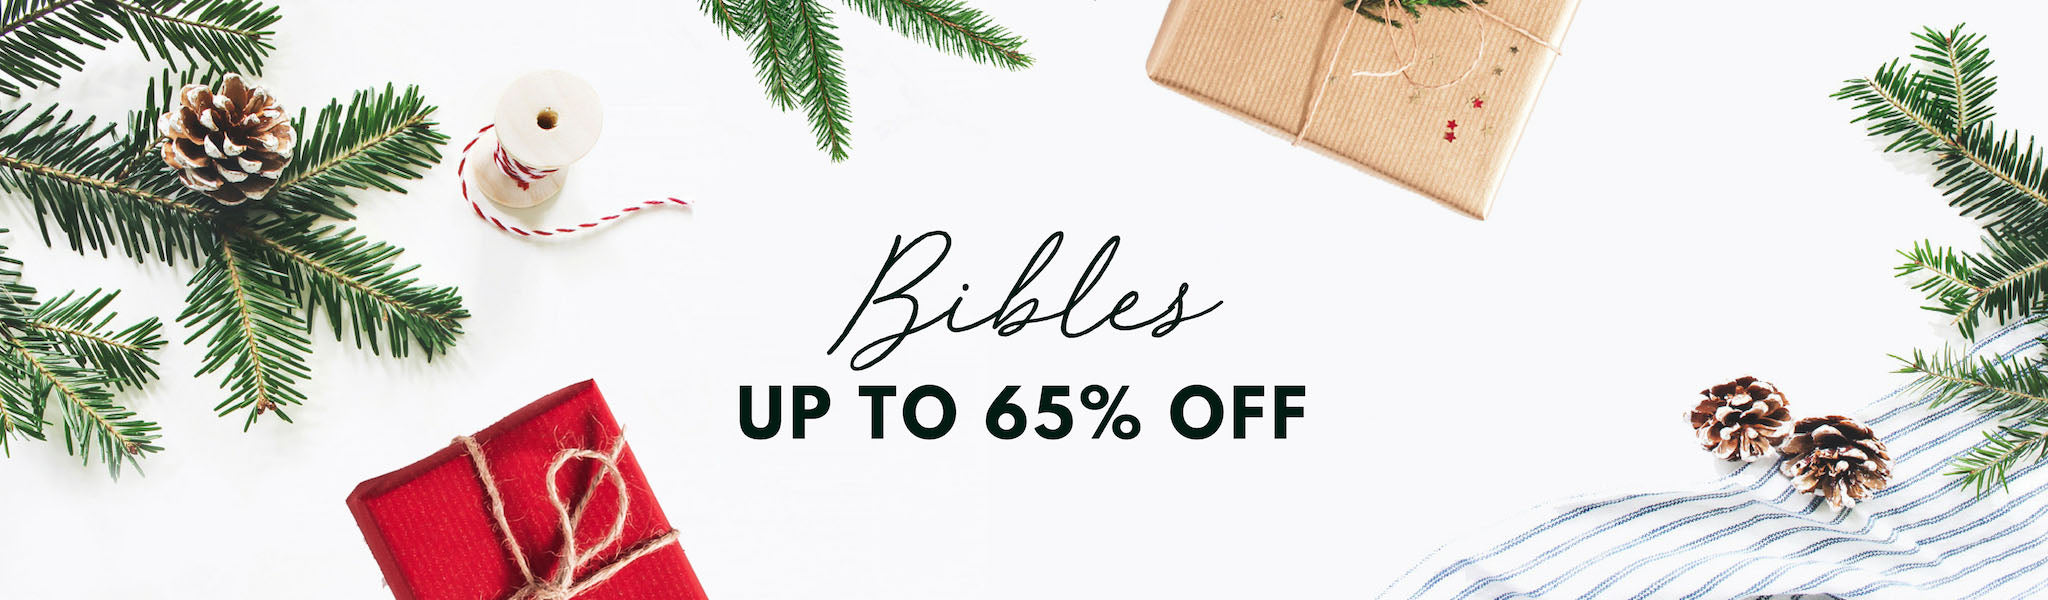 Black Friday Bible Sale